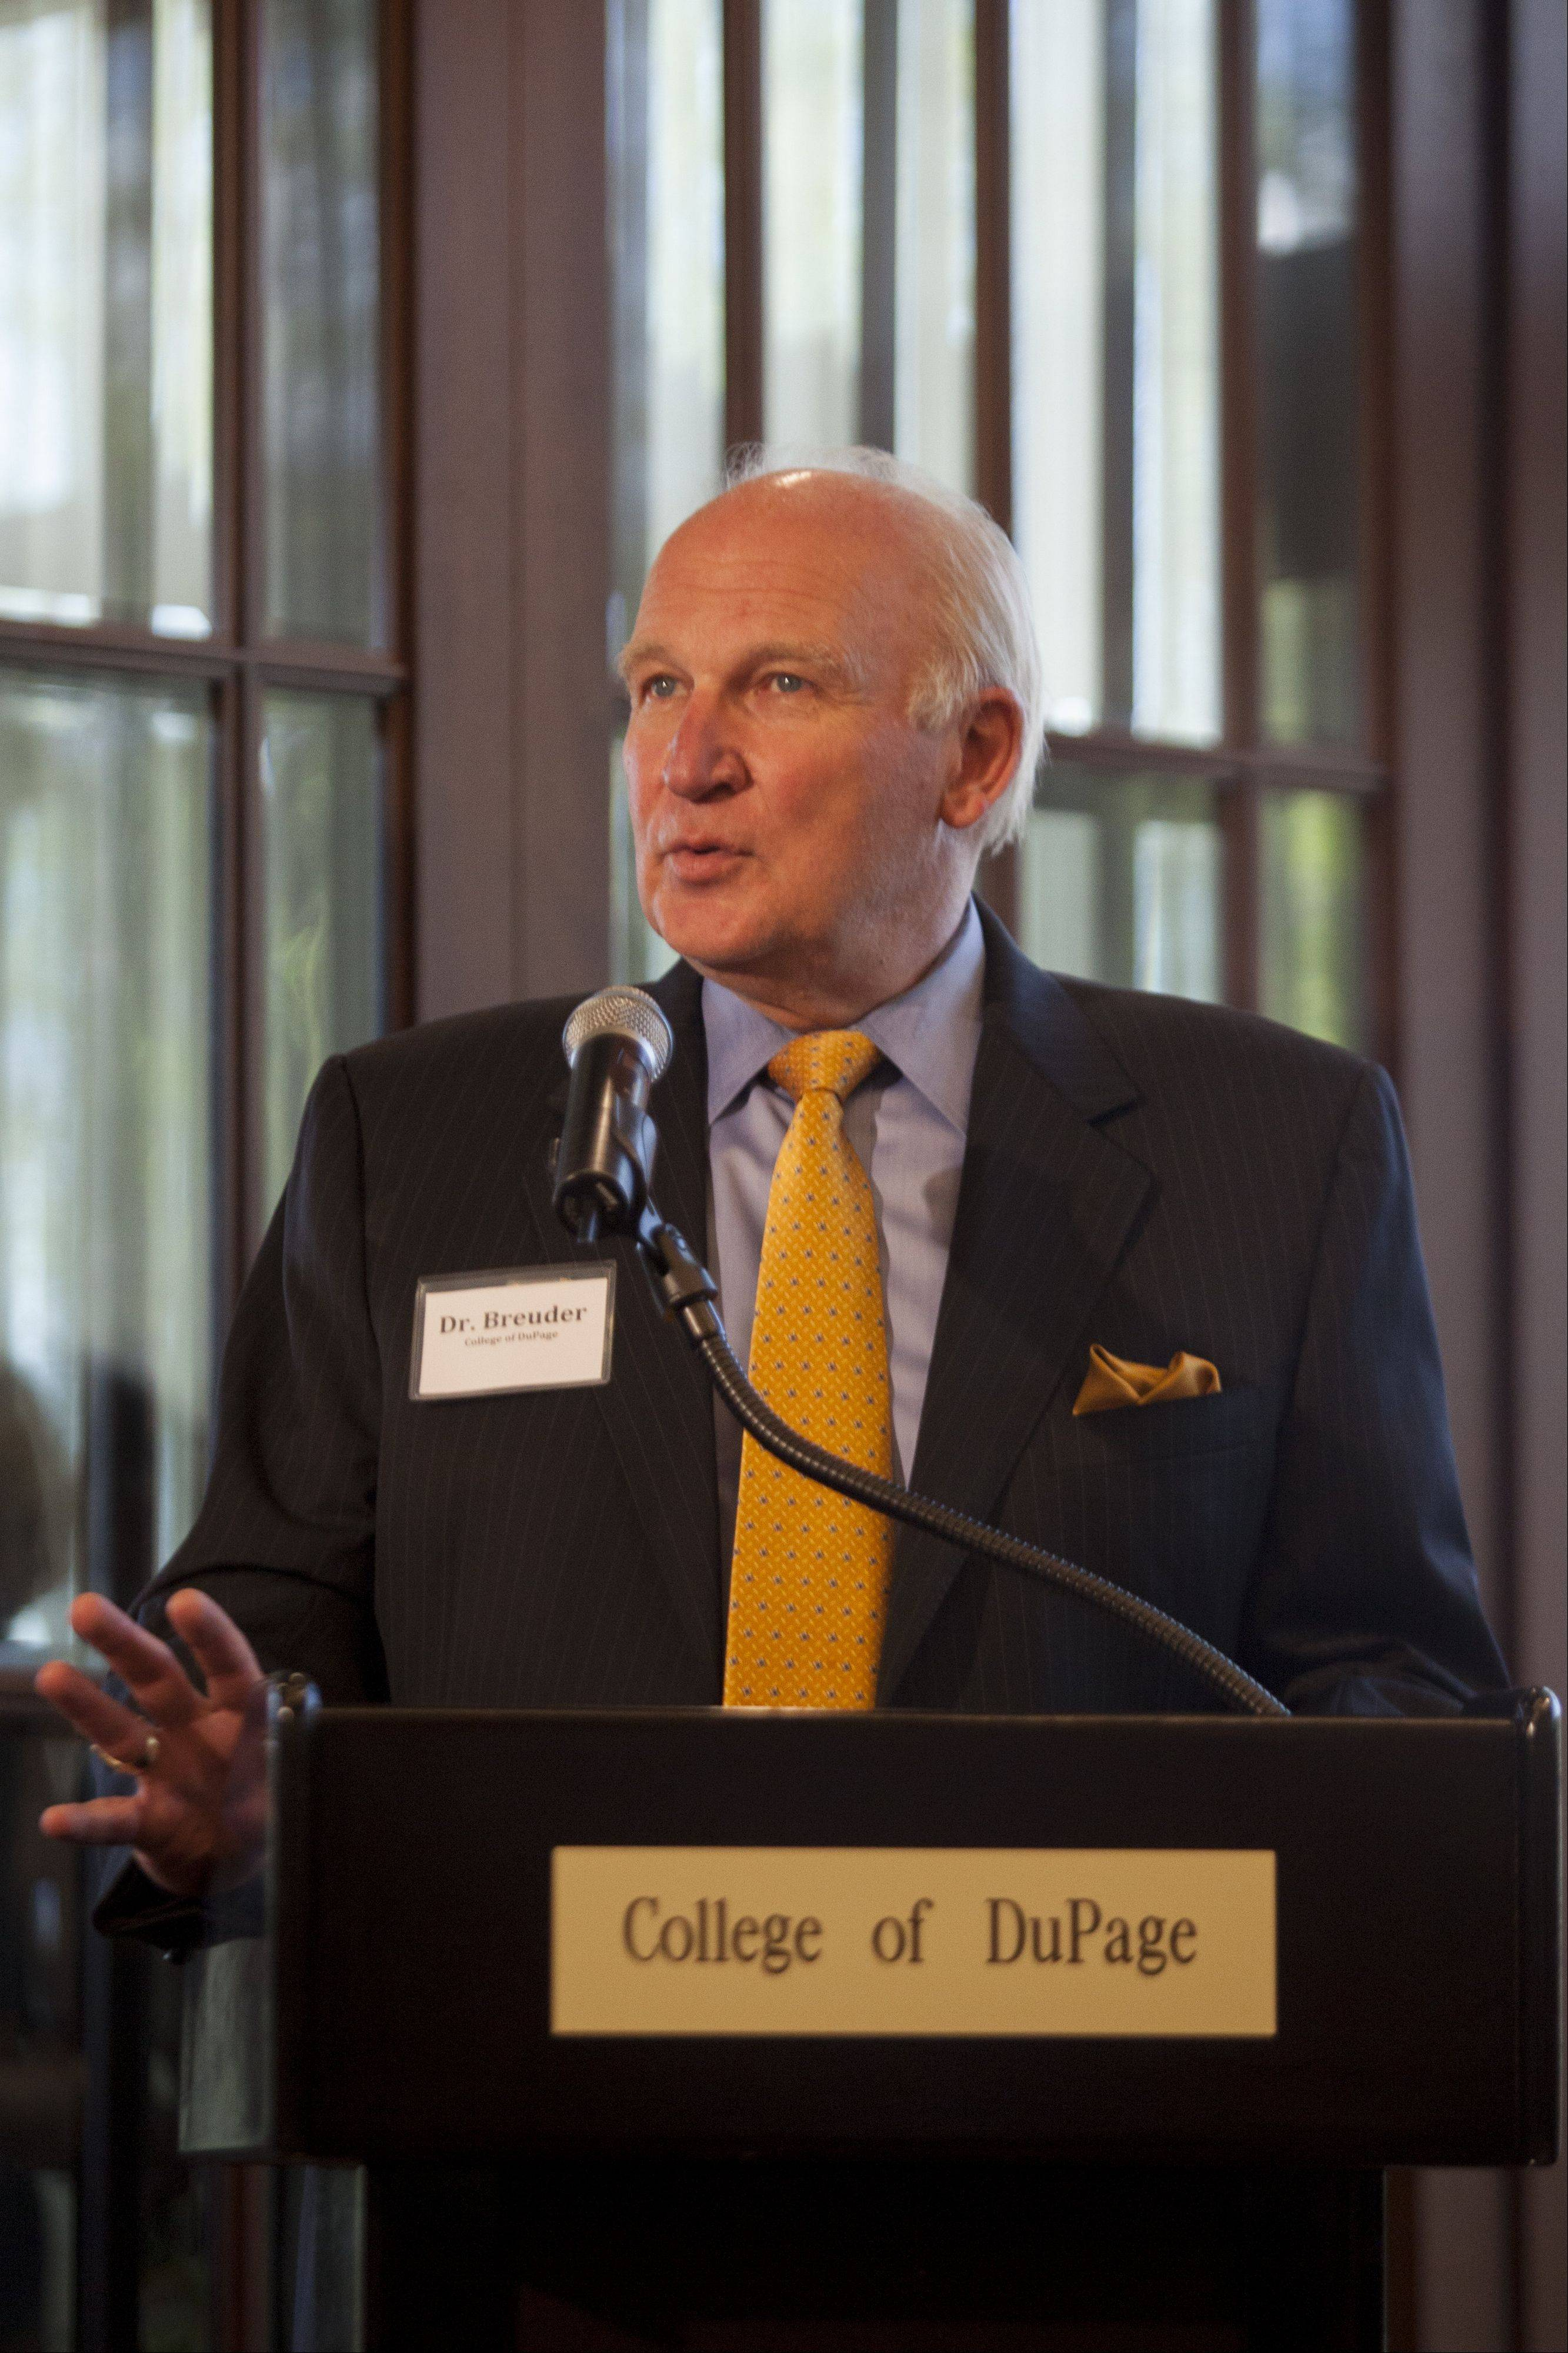 Dr. Robert L. Breuder President of College of DuPage speaks during the Celebration of Cleve Carney Thursday.